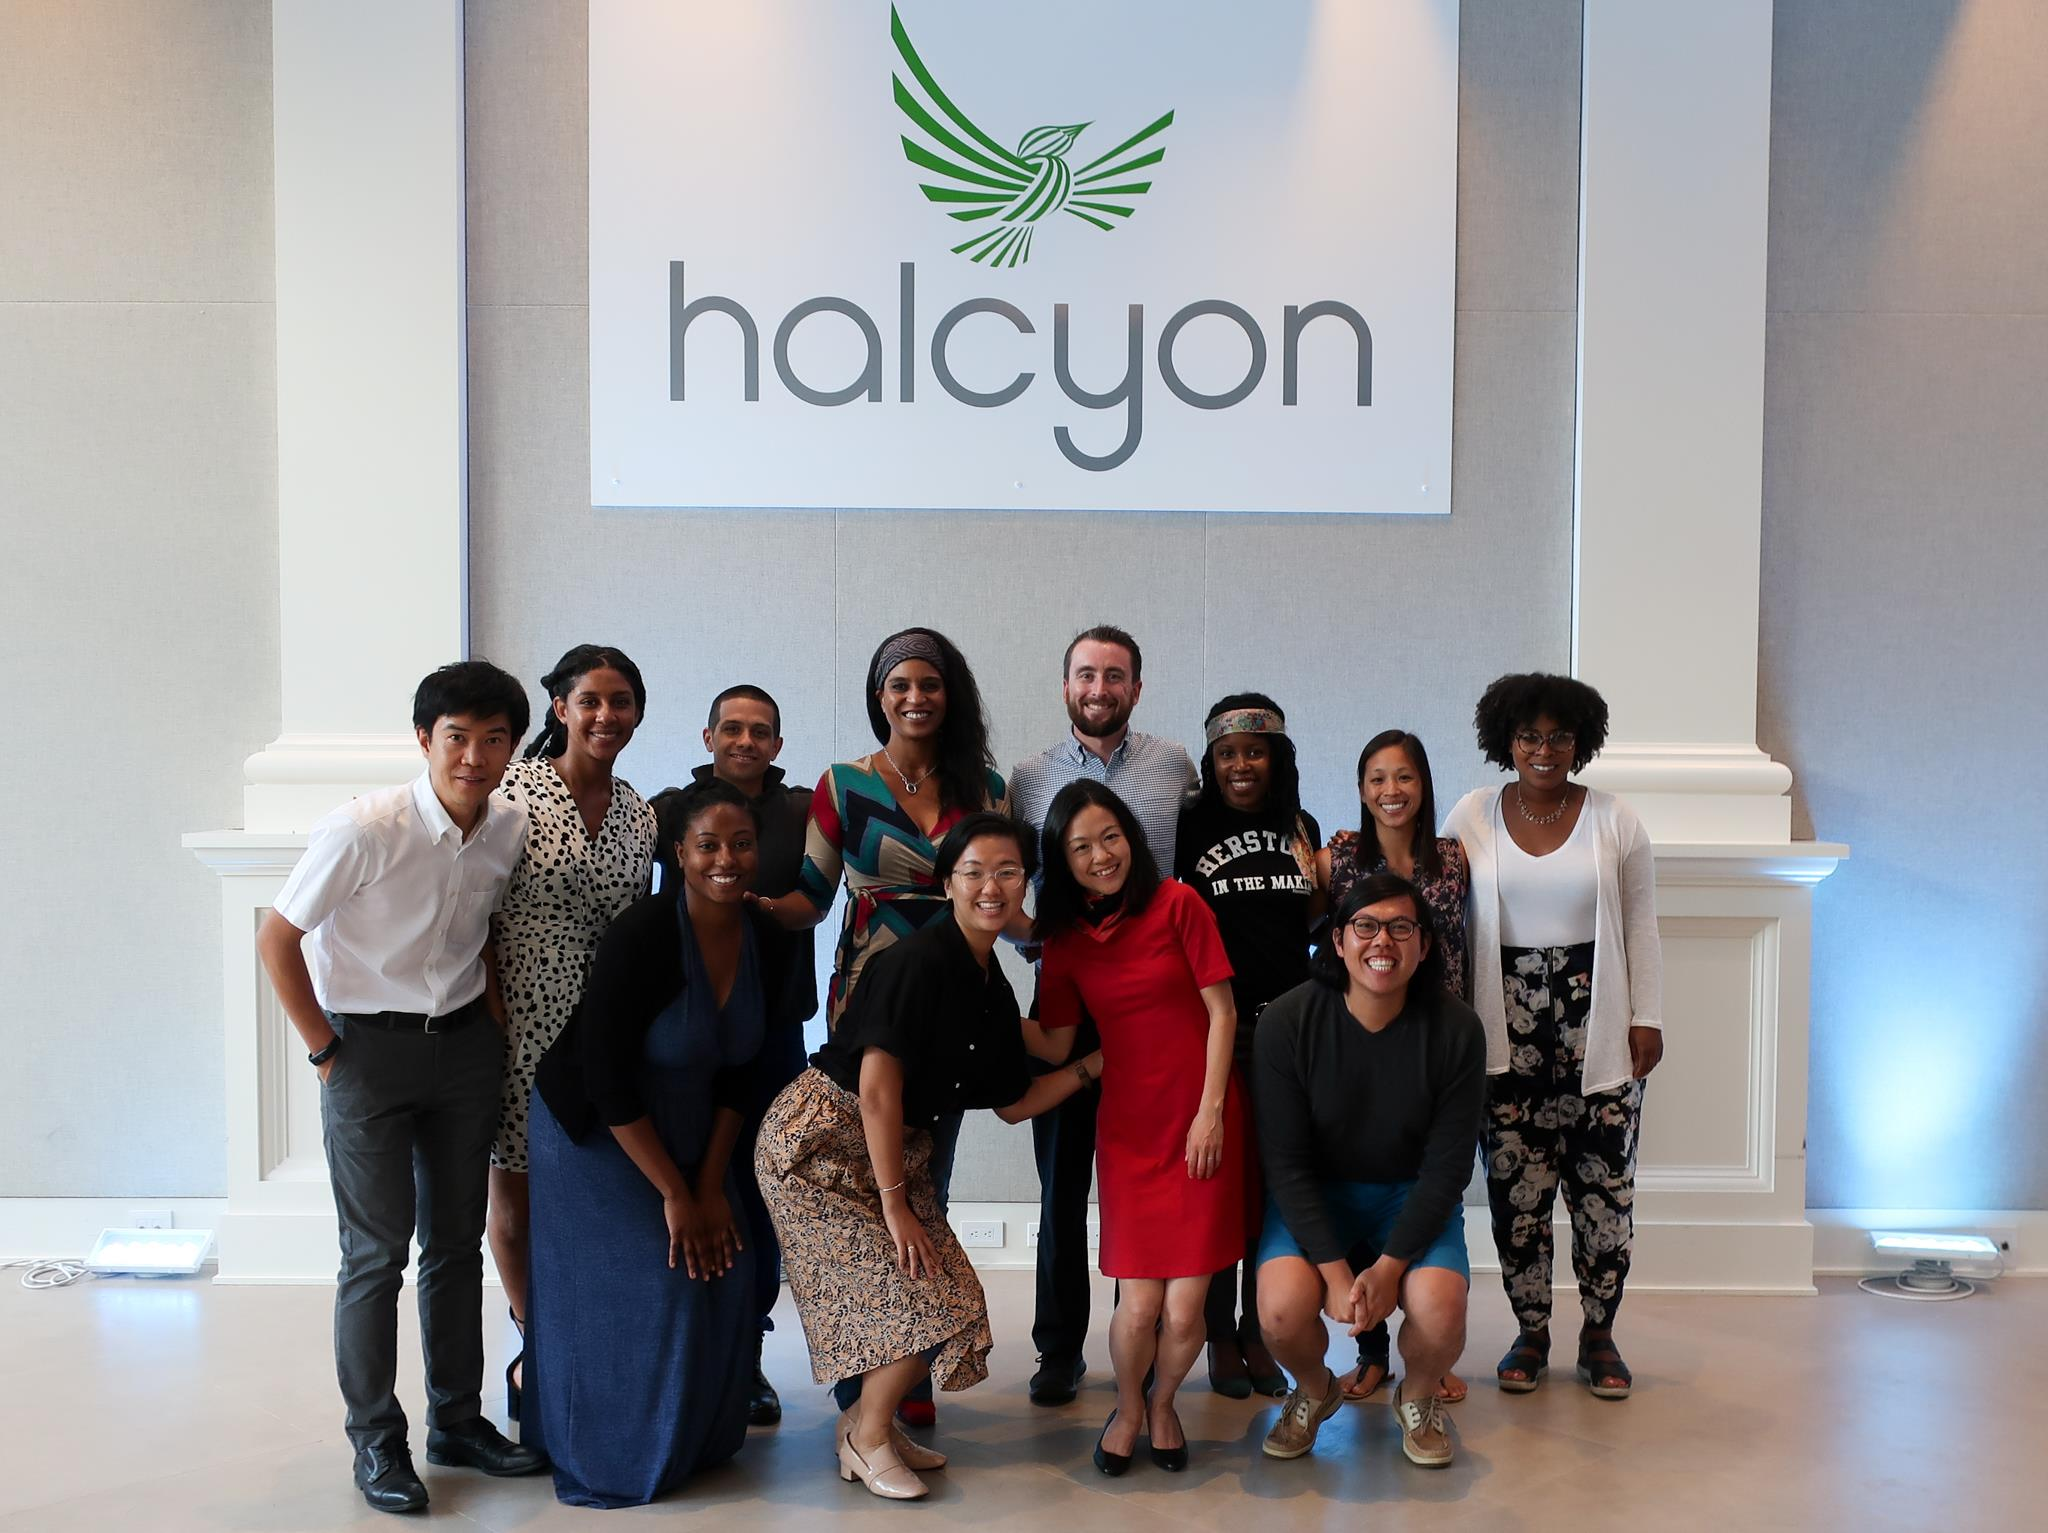 halcyon-group-photo